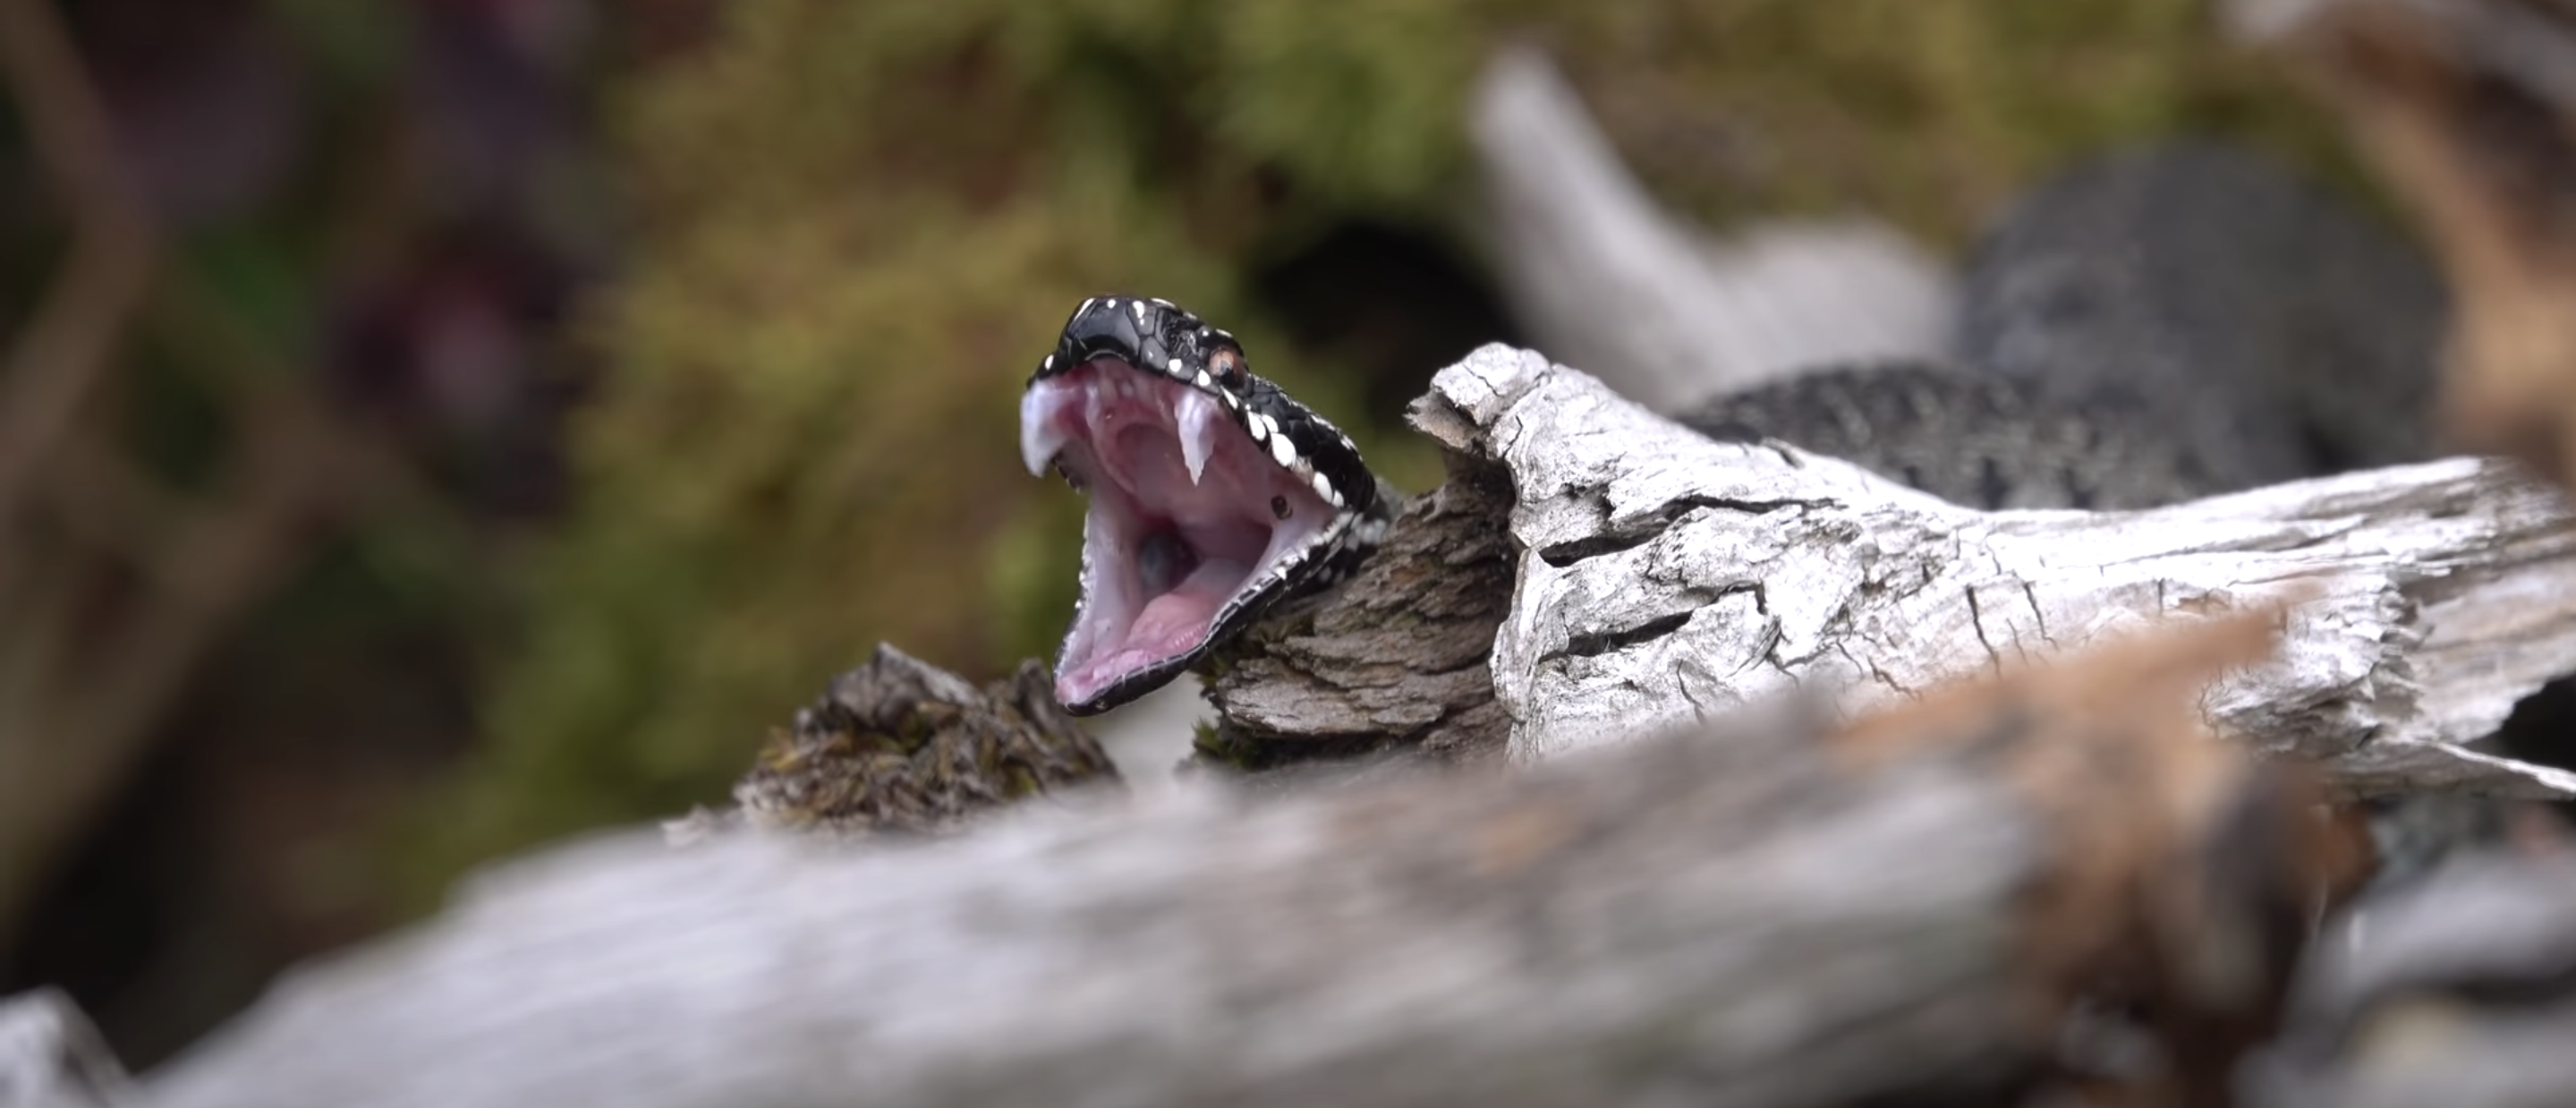 European common viper reveals its fangs before attacking its prey